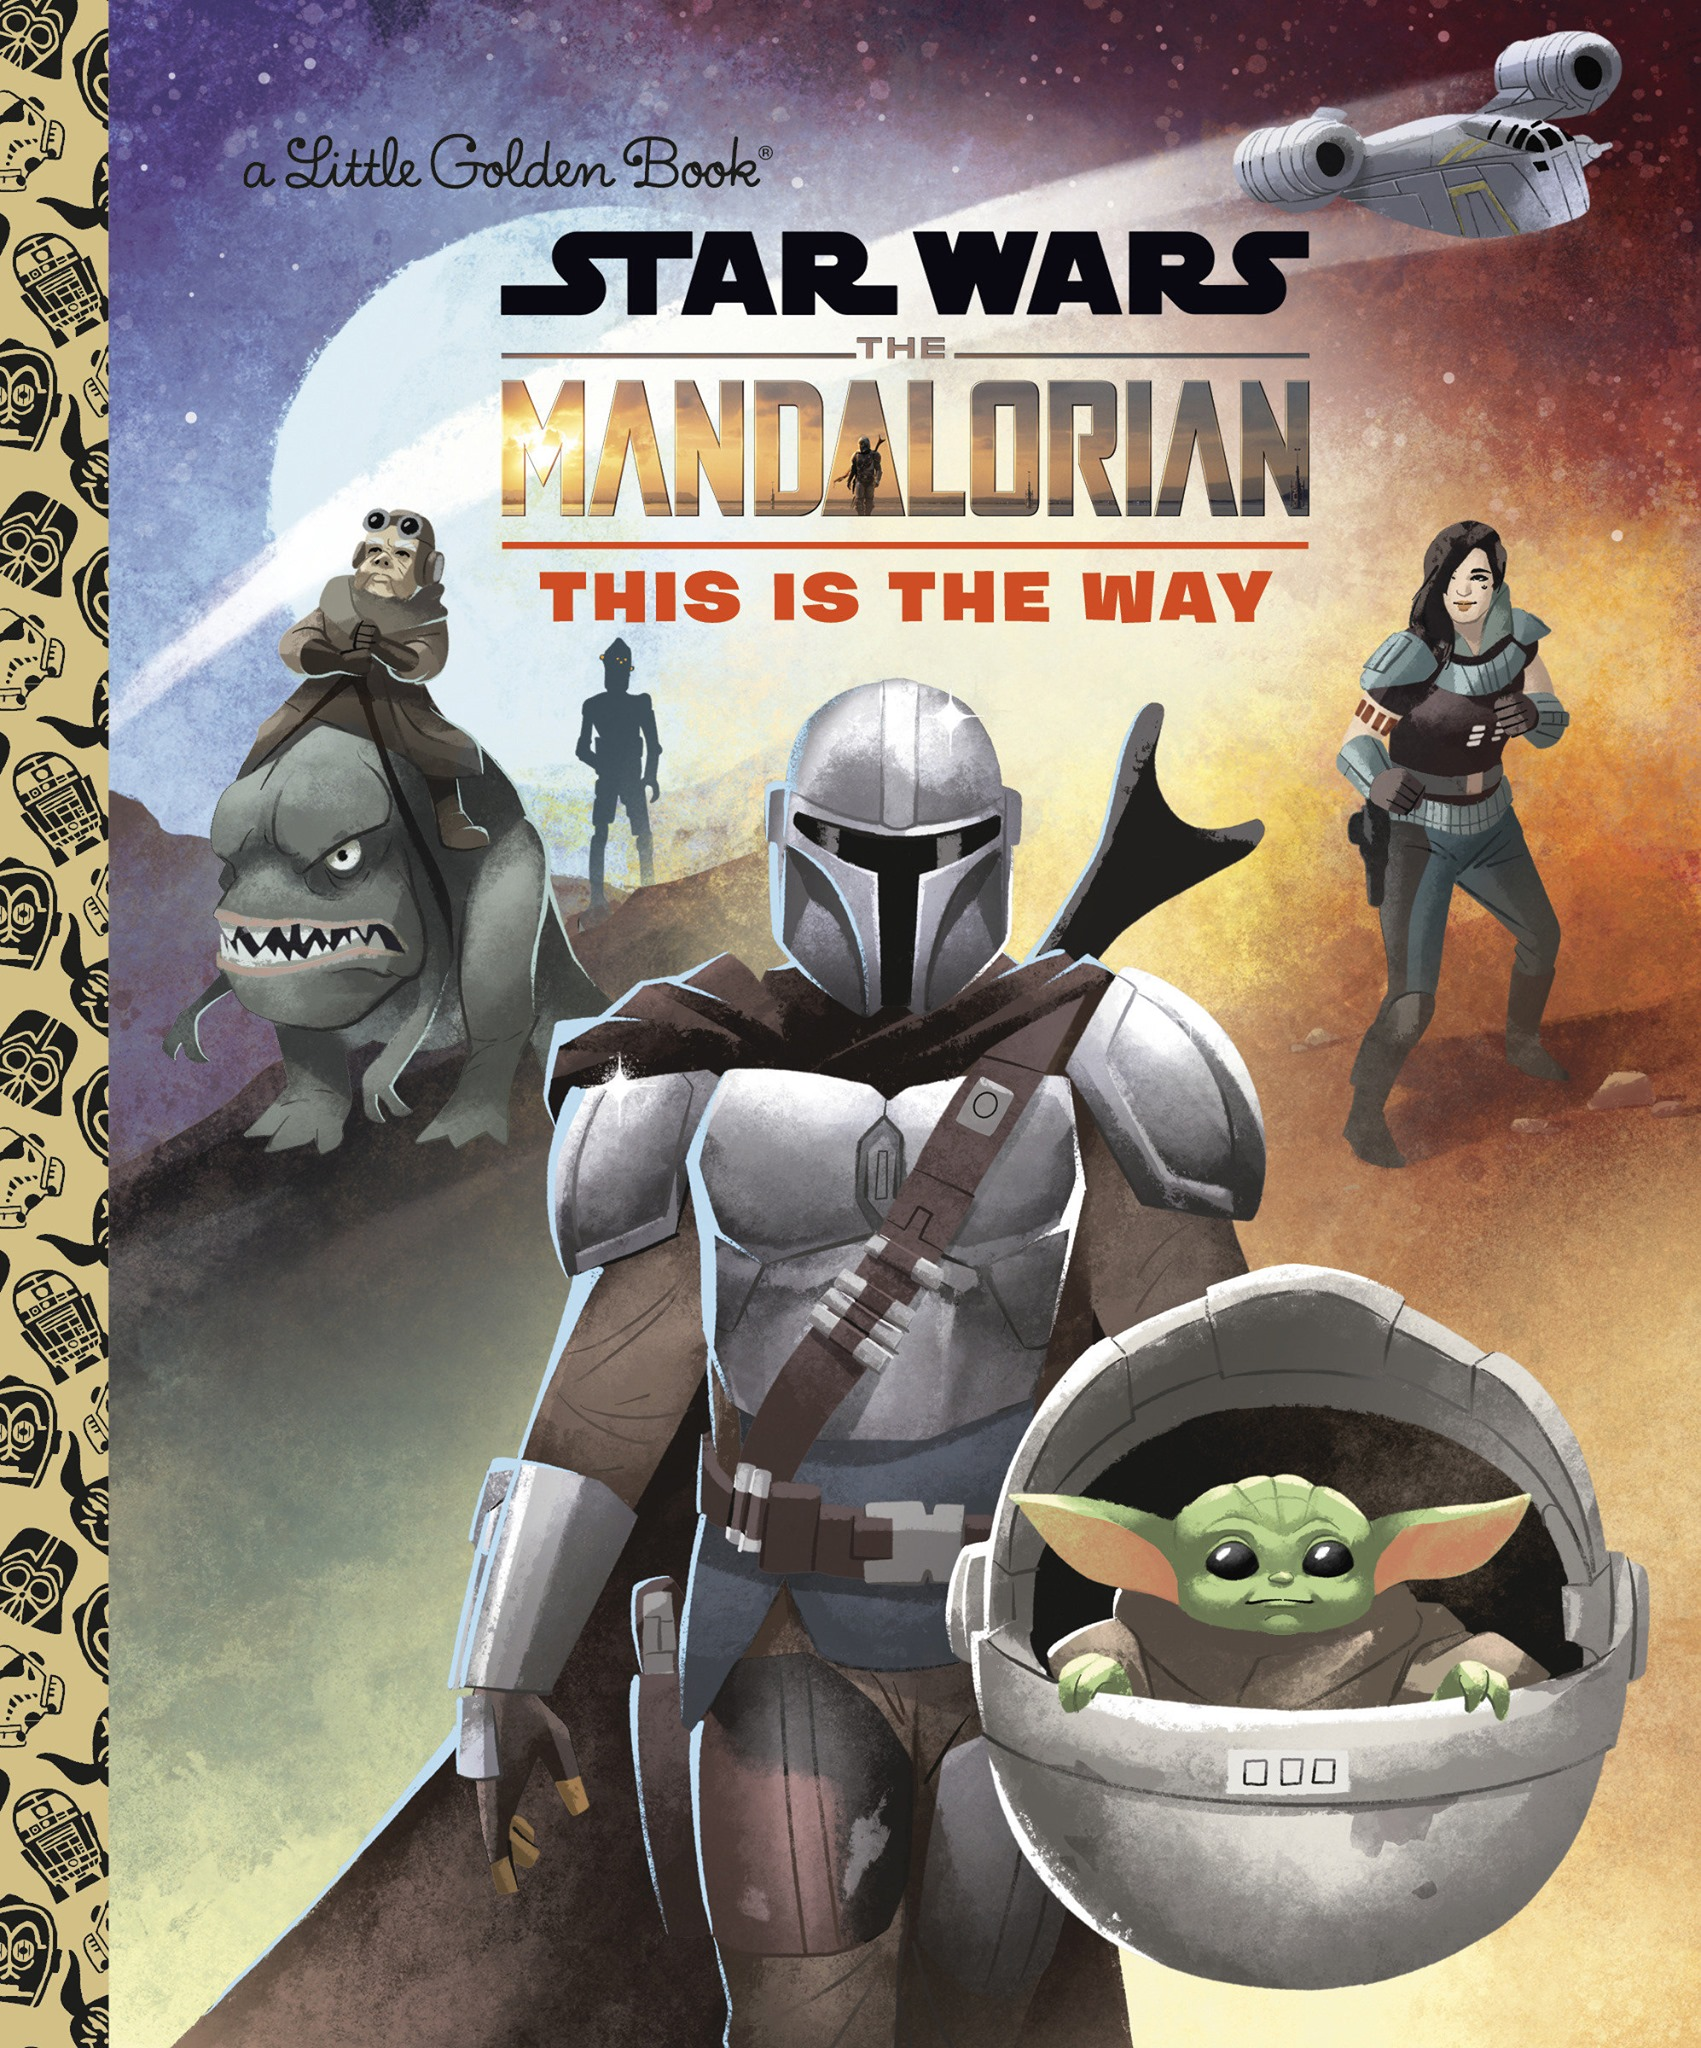 Star Wars: The Mandalorian - This is the Way